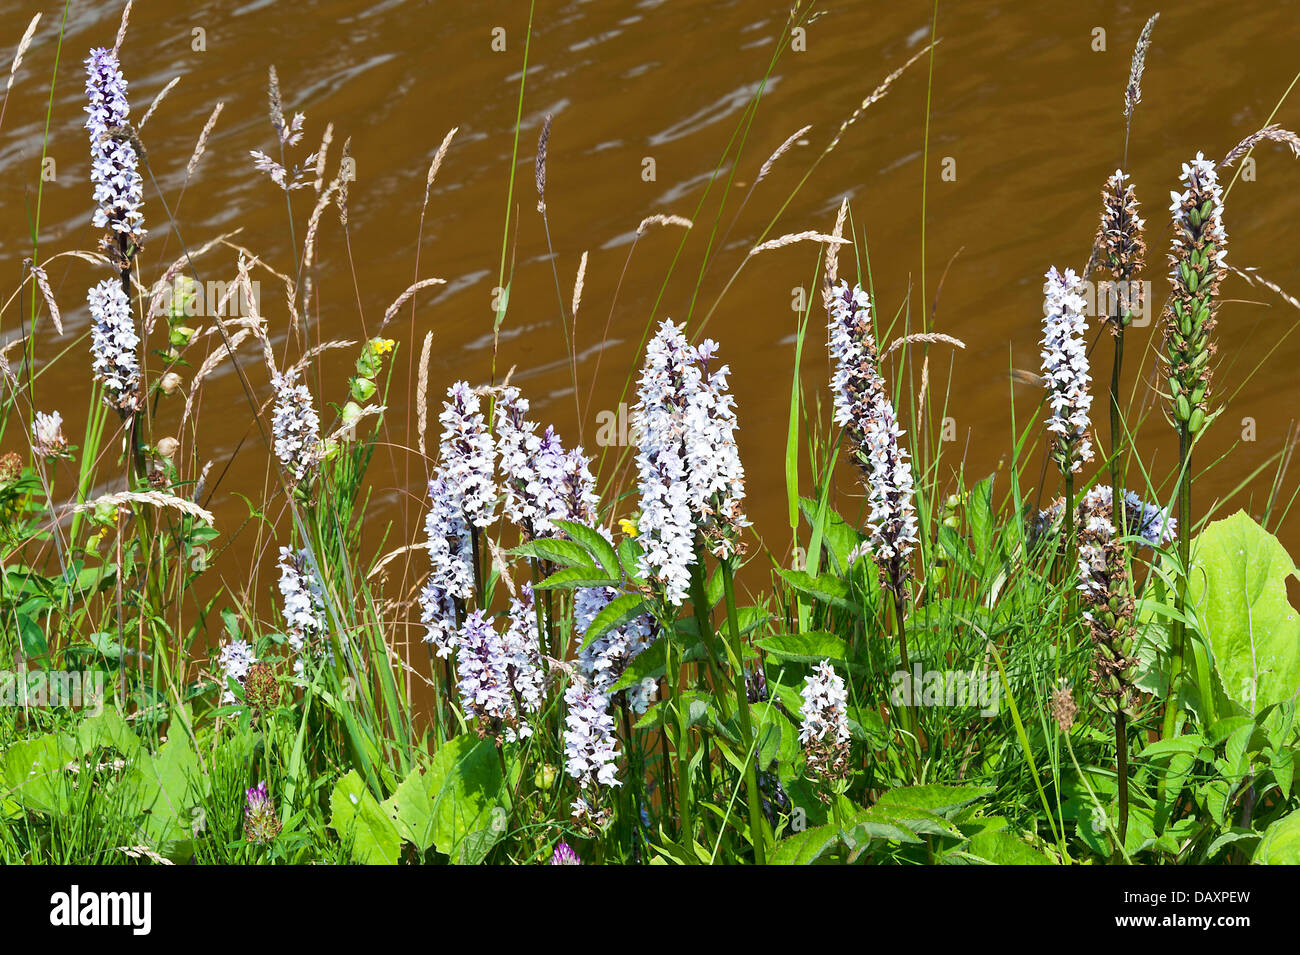 Common Spotted-Orchid Flowers on Towpath of Trent and Mersey Canal near Rode Heath Cheshire England United Kingdom - Stock Image